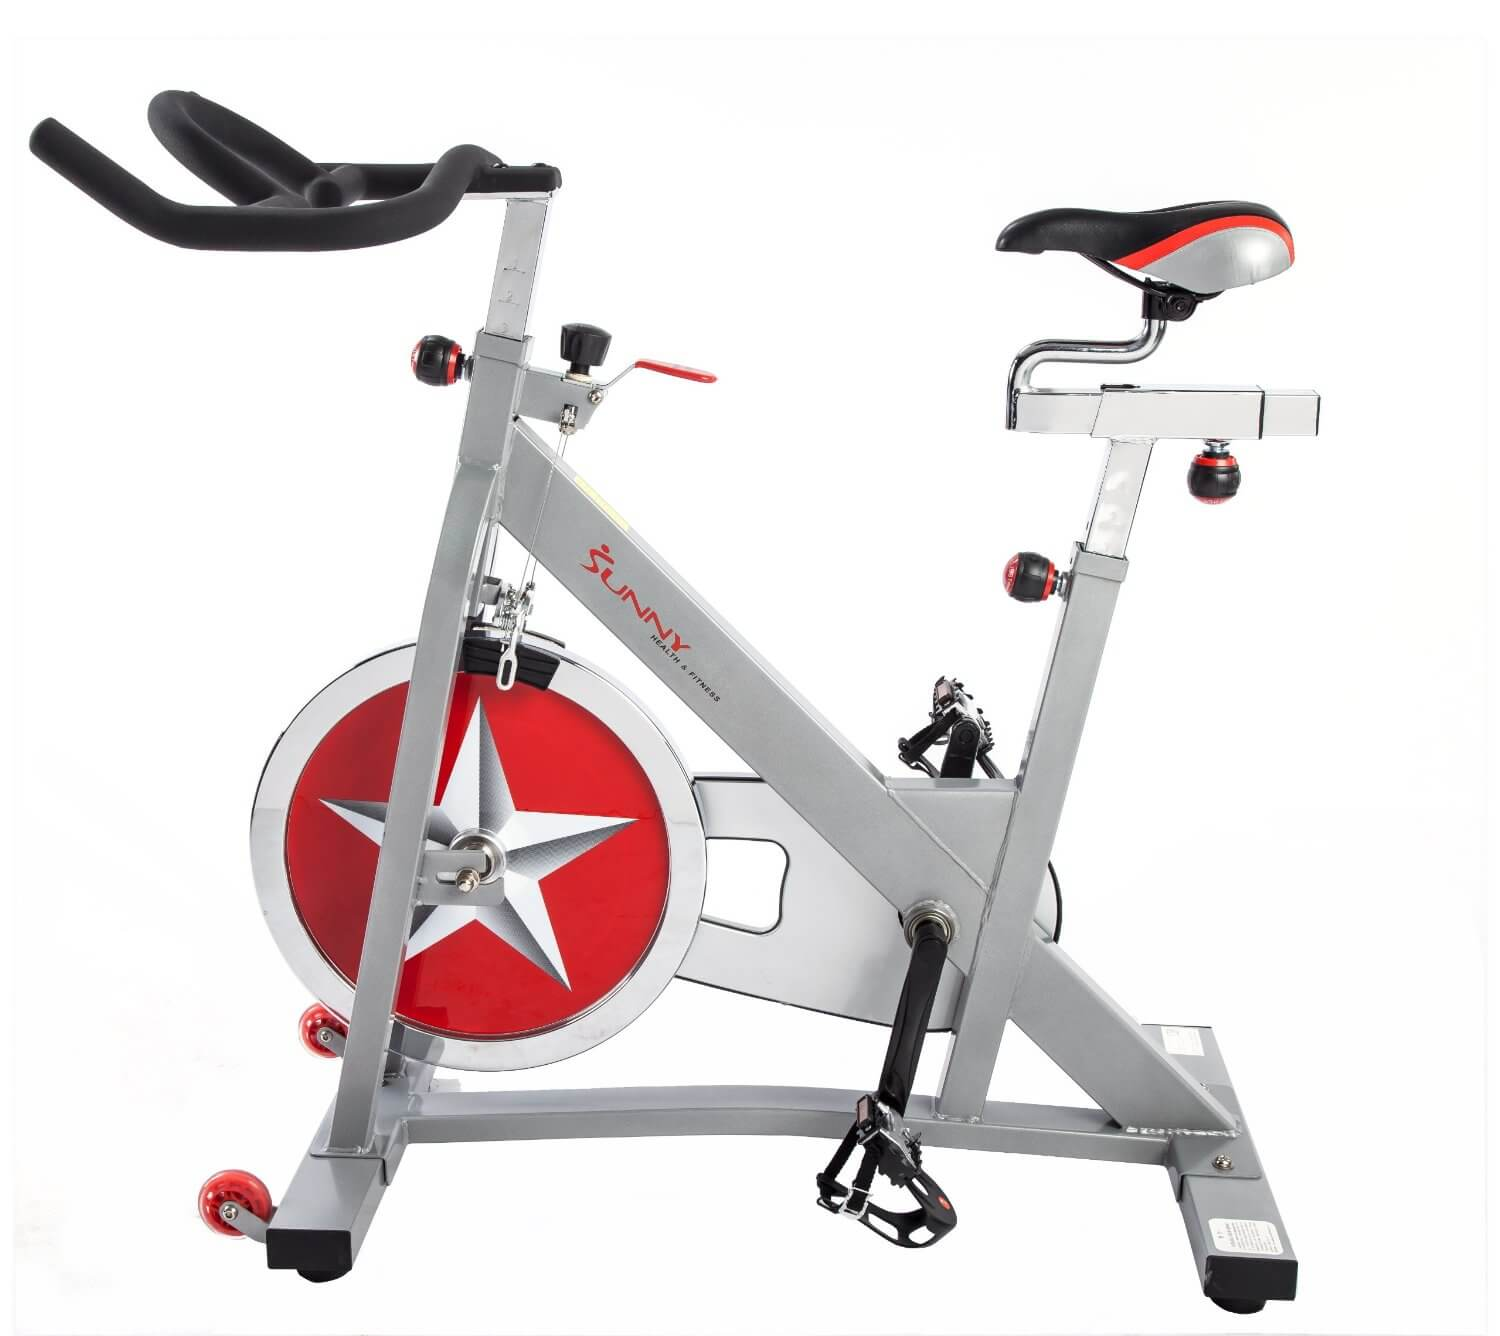 Indoor Cycling Benefits |Why Go for Indoor Cycling?